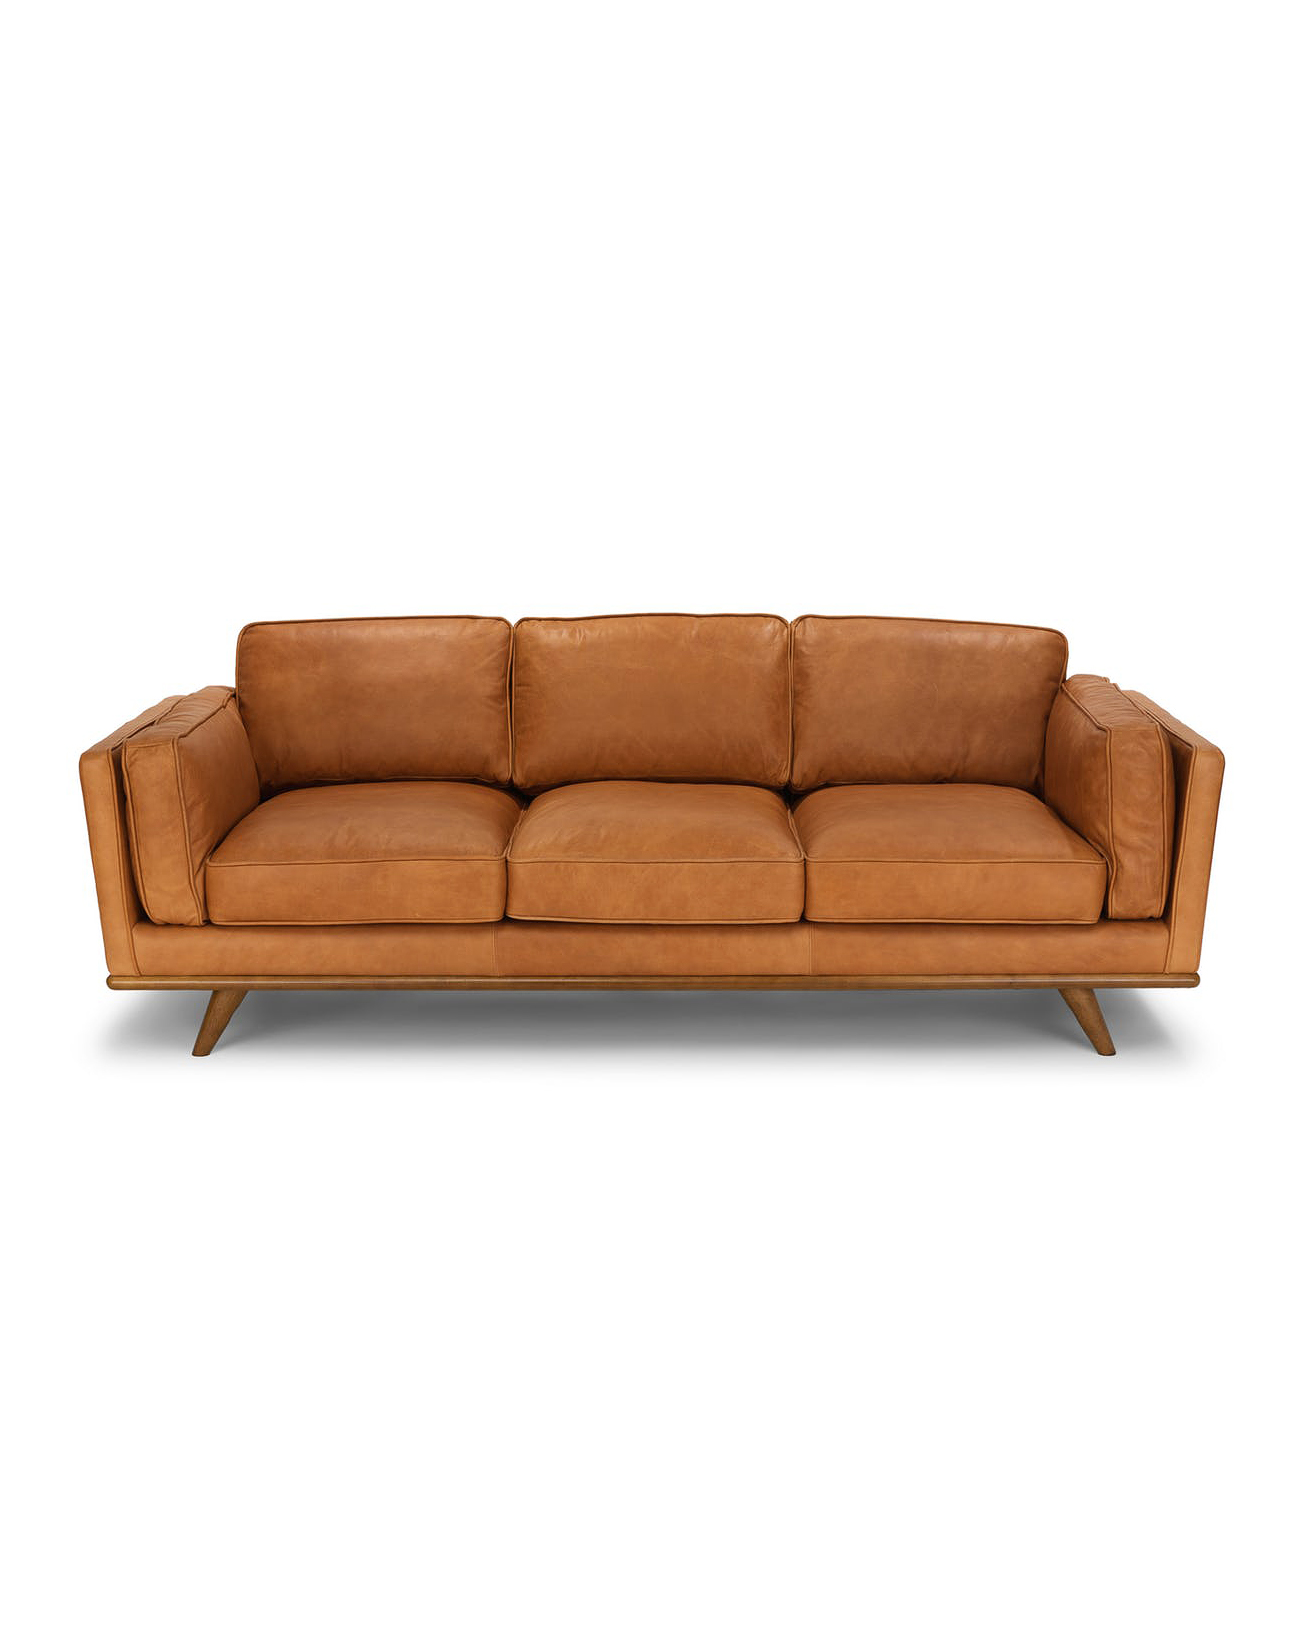 furniture anniversary gift leather sofa